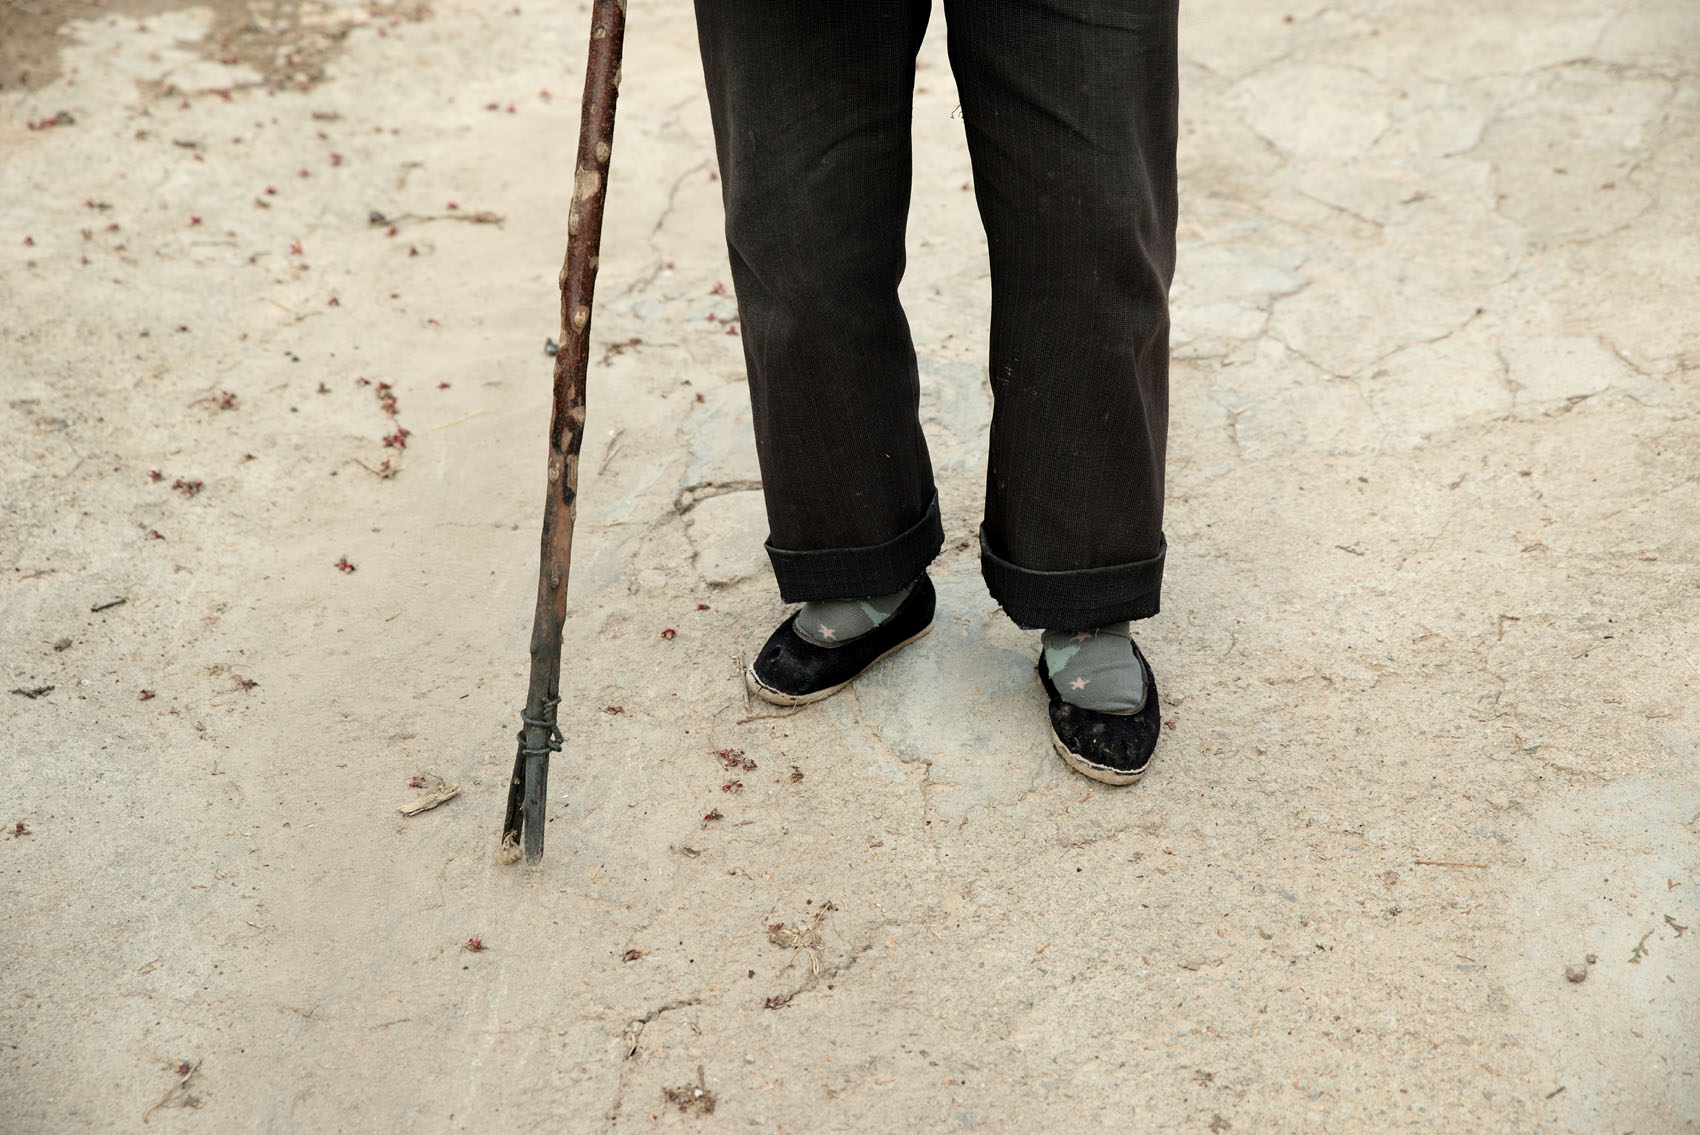 Wang Huanguo needs a stick to walk with her bound feet.